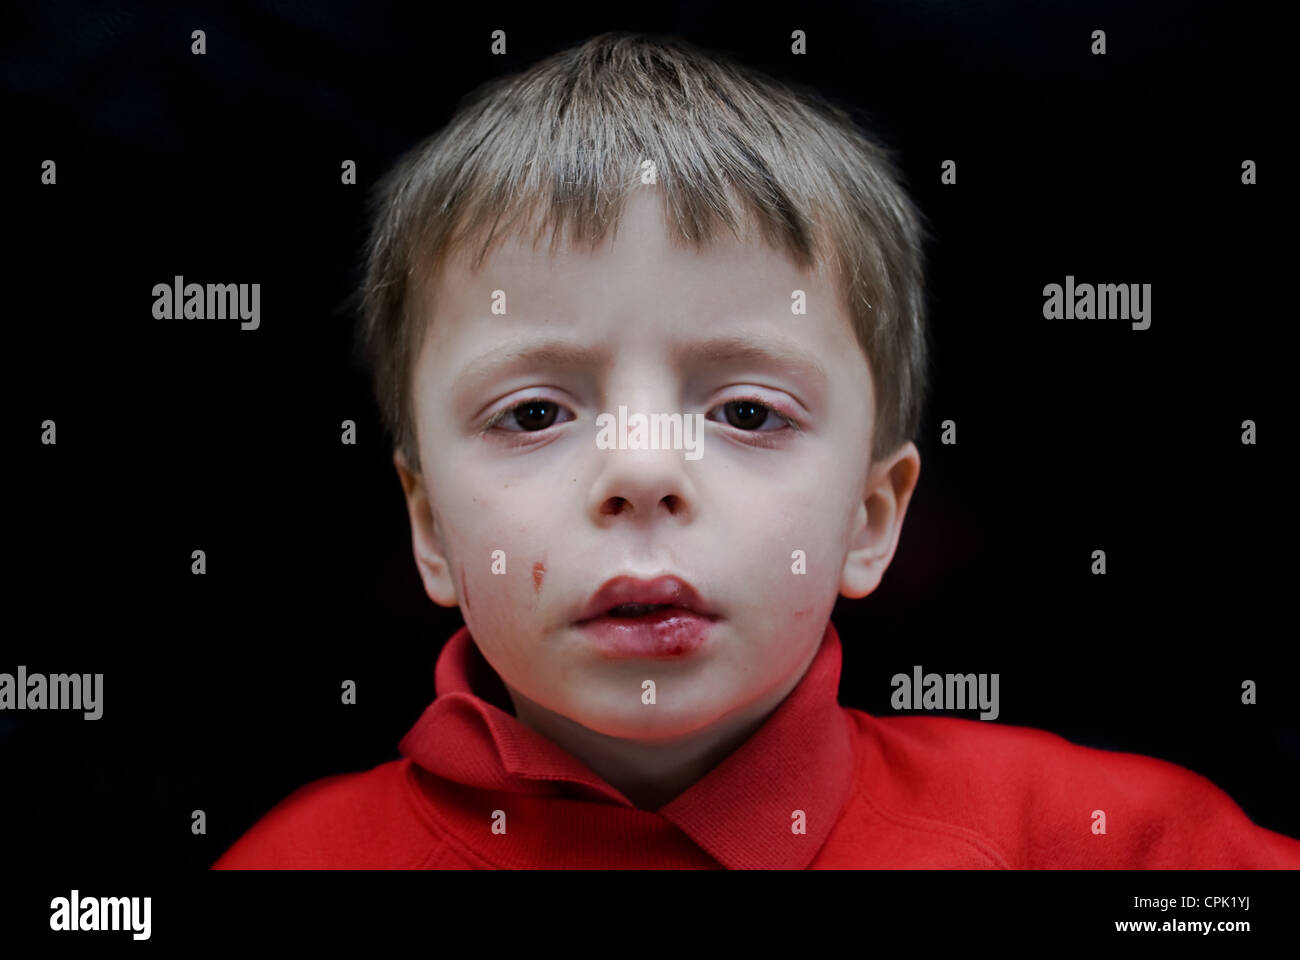 Impression of an abused child or child that has been hurt from falling over. - Stock Image